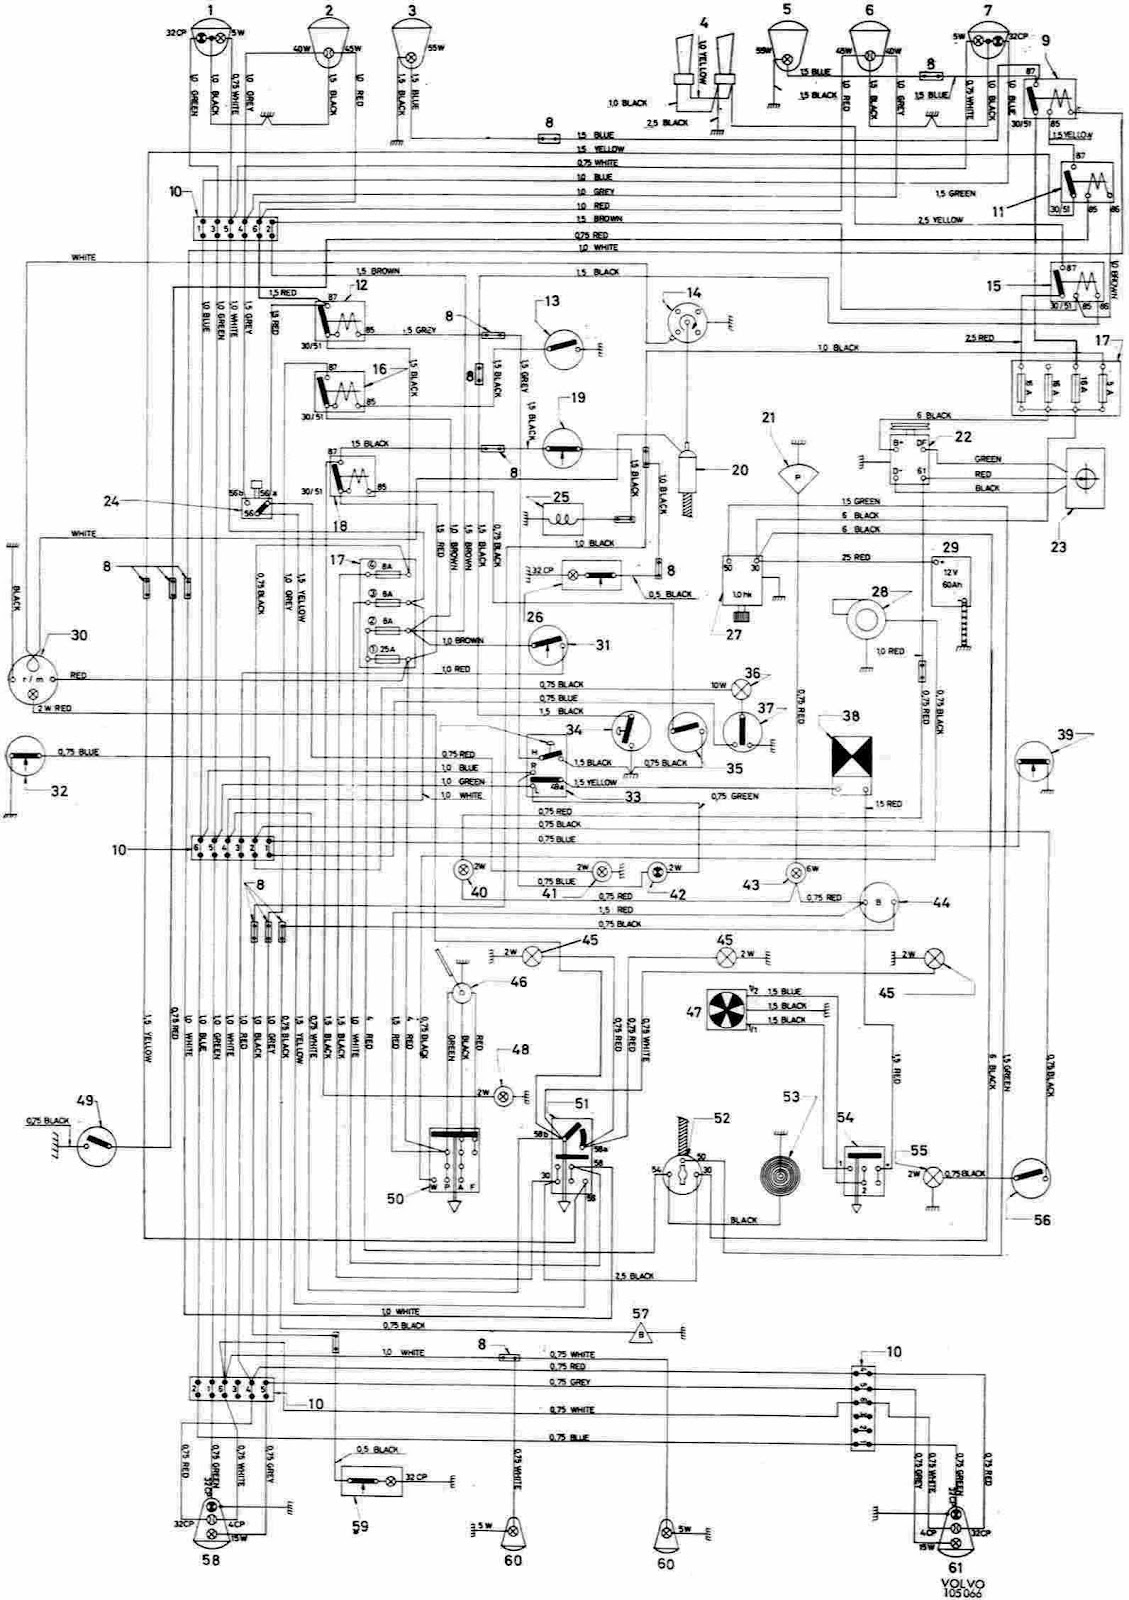 2004 Volvo S60 Headlight Wiring Harness Diagram - filter.carh.cdu ... 2004 Volvo Xc90 Headlight Wiring Diagram Diagram Source